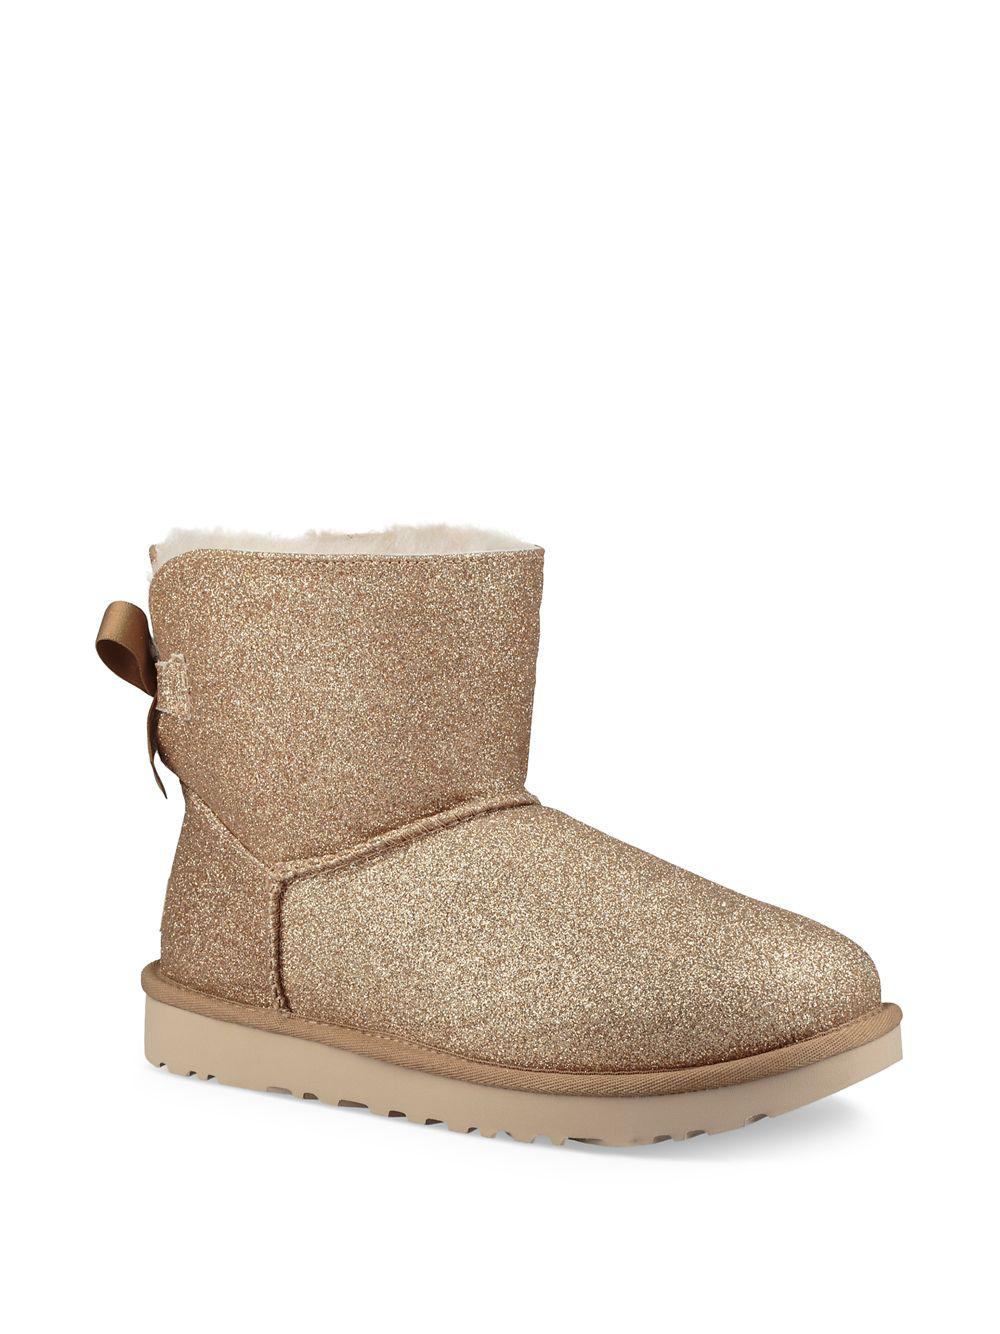 69aacaa4eee Ugg Metallic Mini Bailey Bow Sparkle Shearling Boots